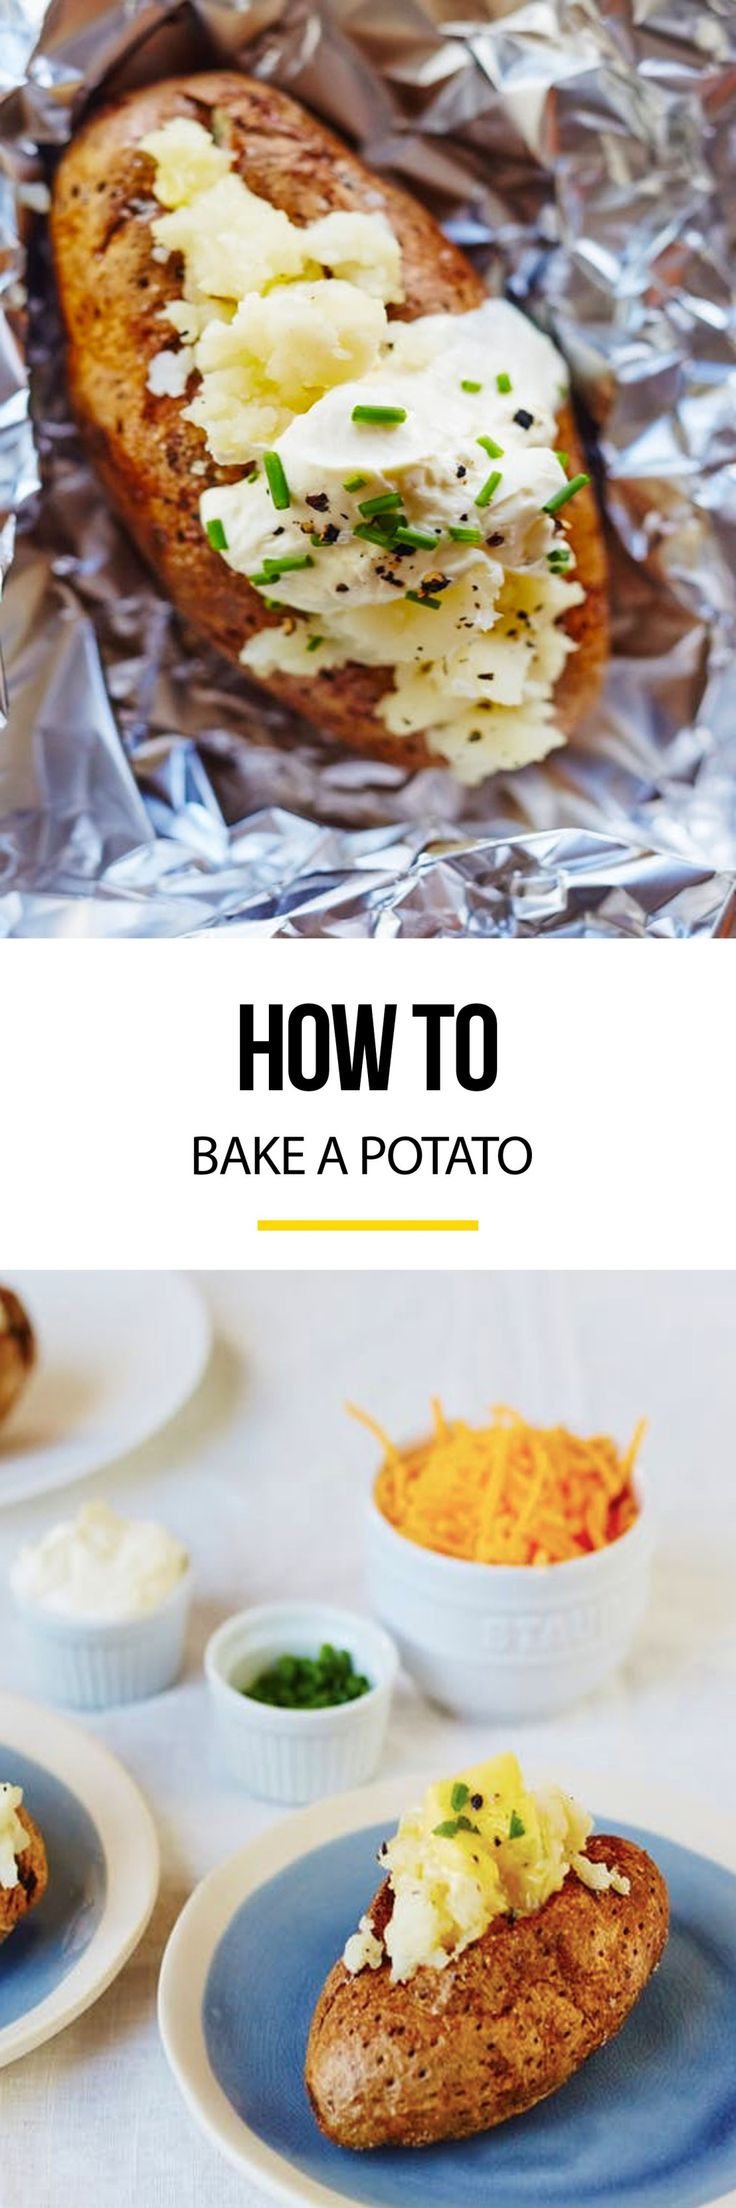 How To Bake A Potato: Three Easy Methods — Tips From The